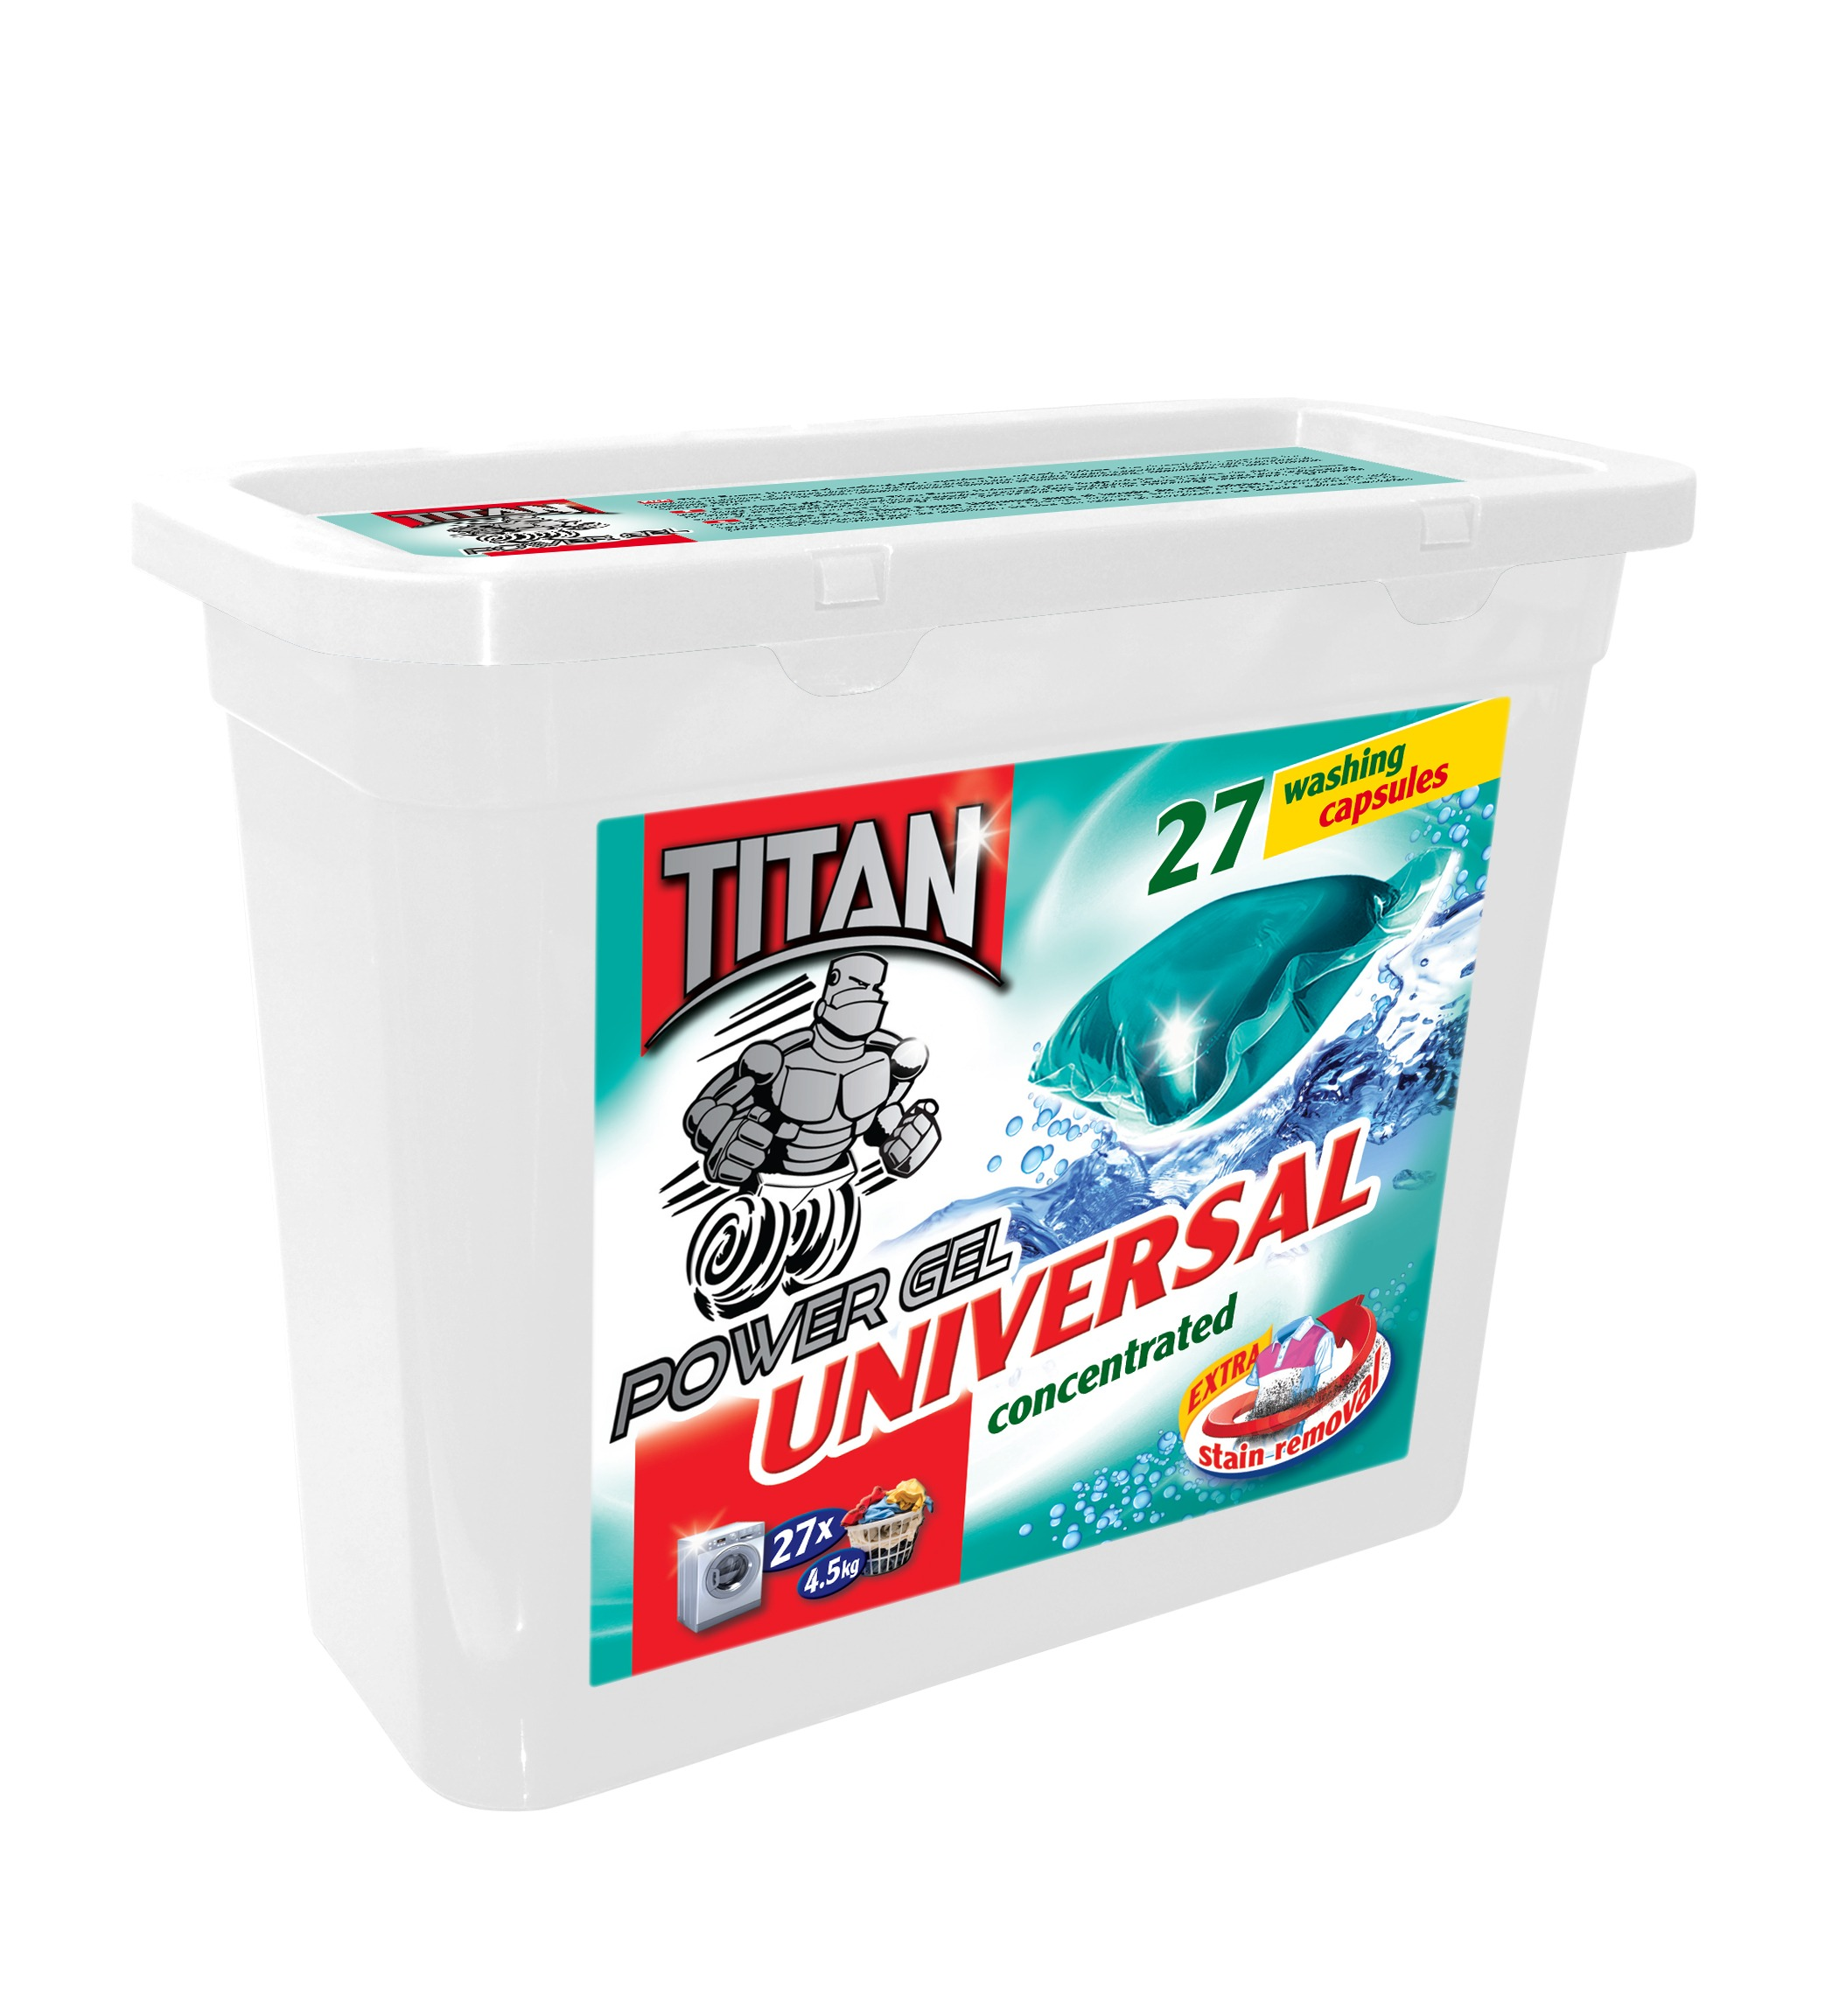 titan power capsules in 3 different variations 27 pieces